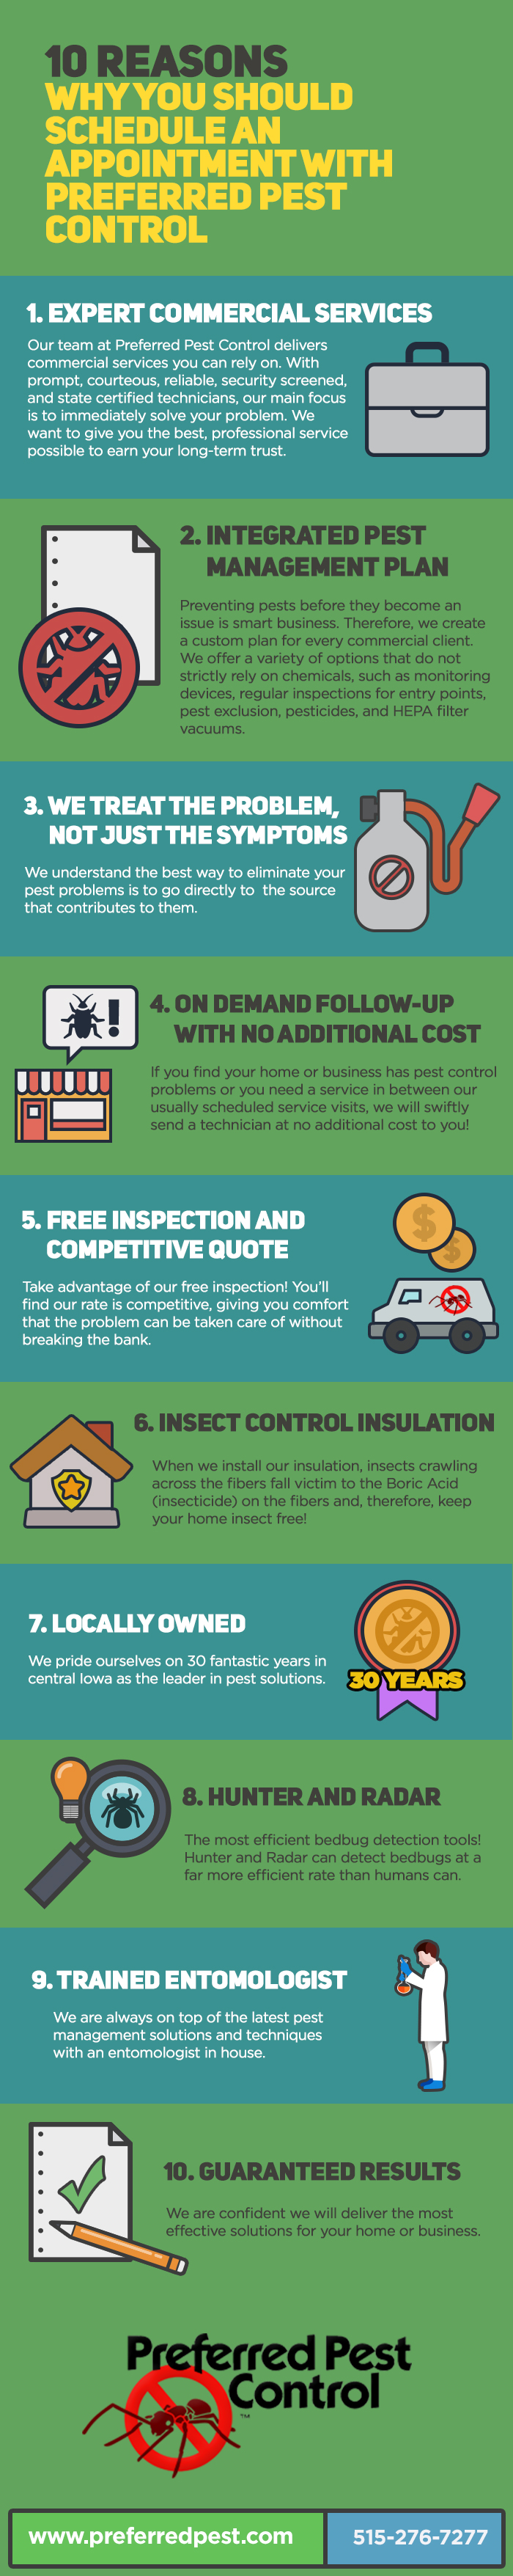 10 Reasons Why you Should Schedule an Appointment with Preferred Pest Control